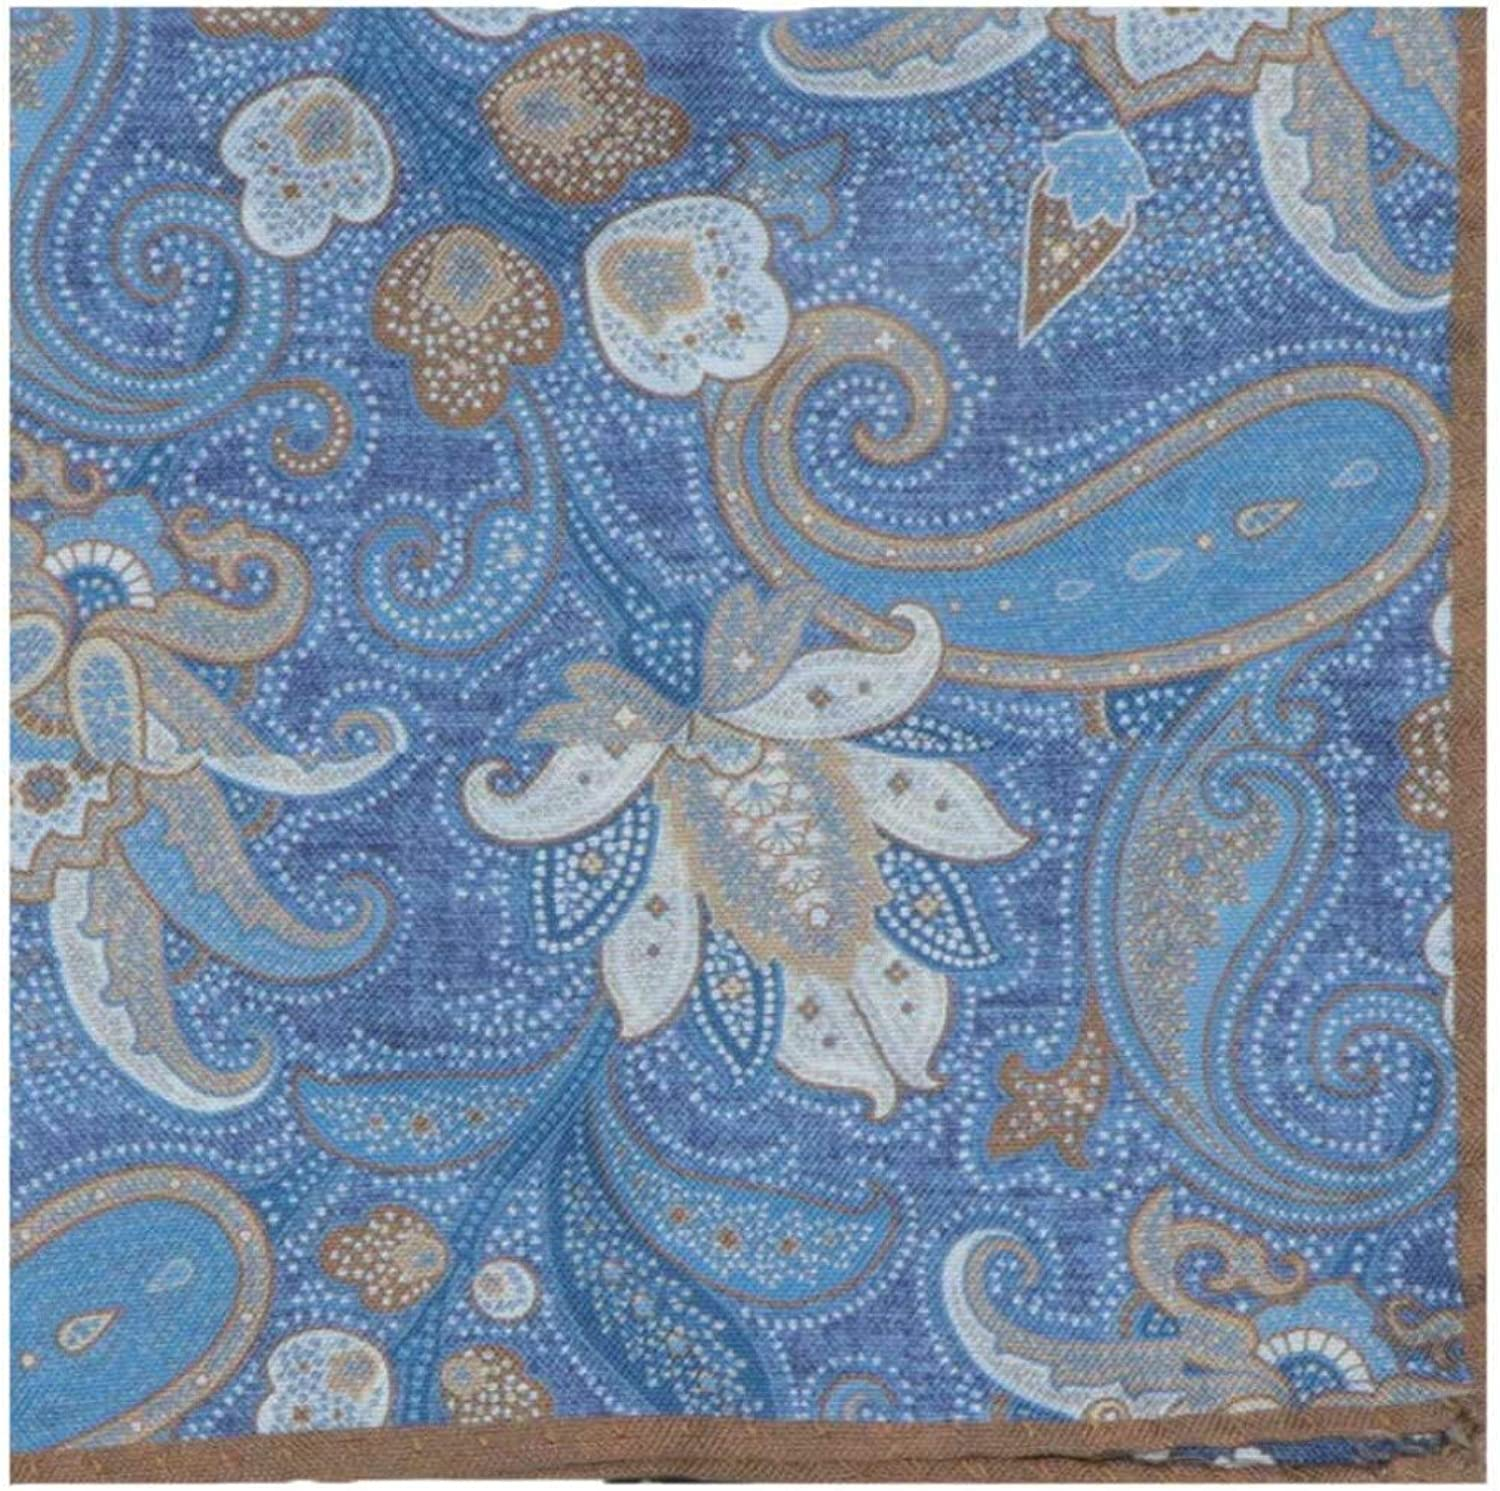 Dion Men's Double Sided Paisley Floral Our shop most popular Max 59% OFF Pocket Bordered Square